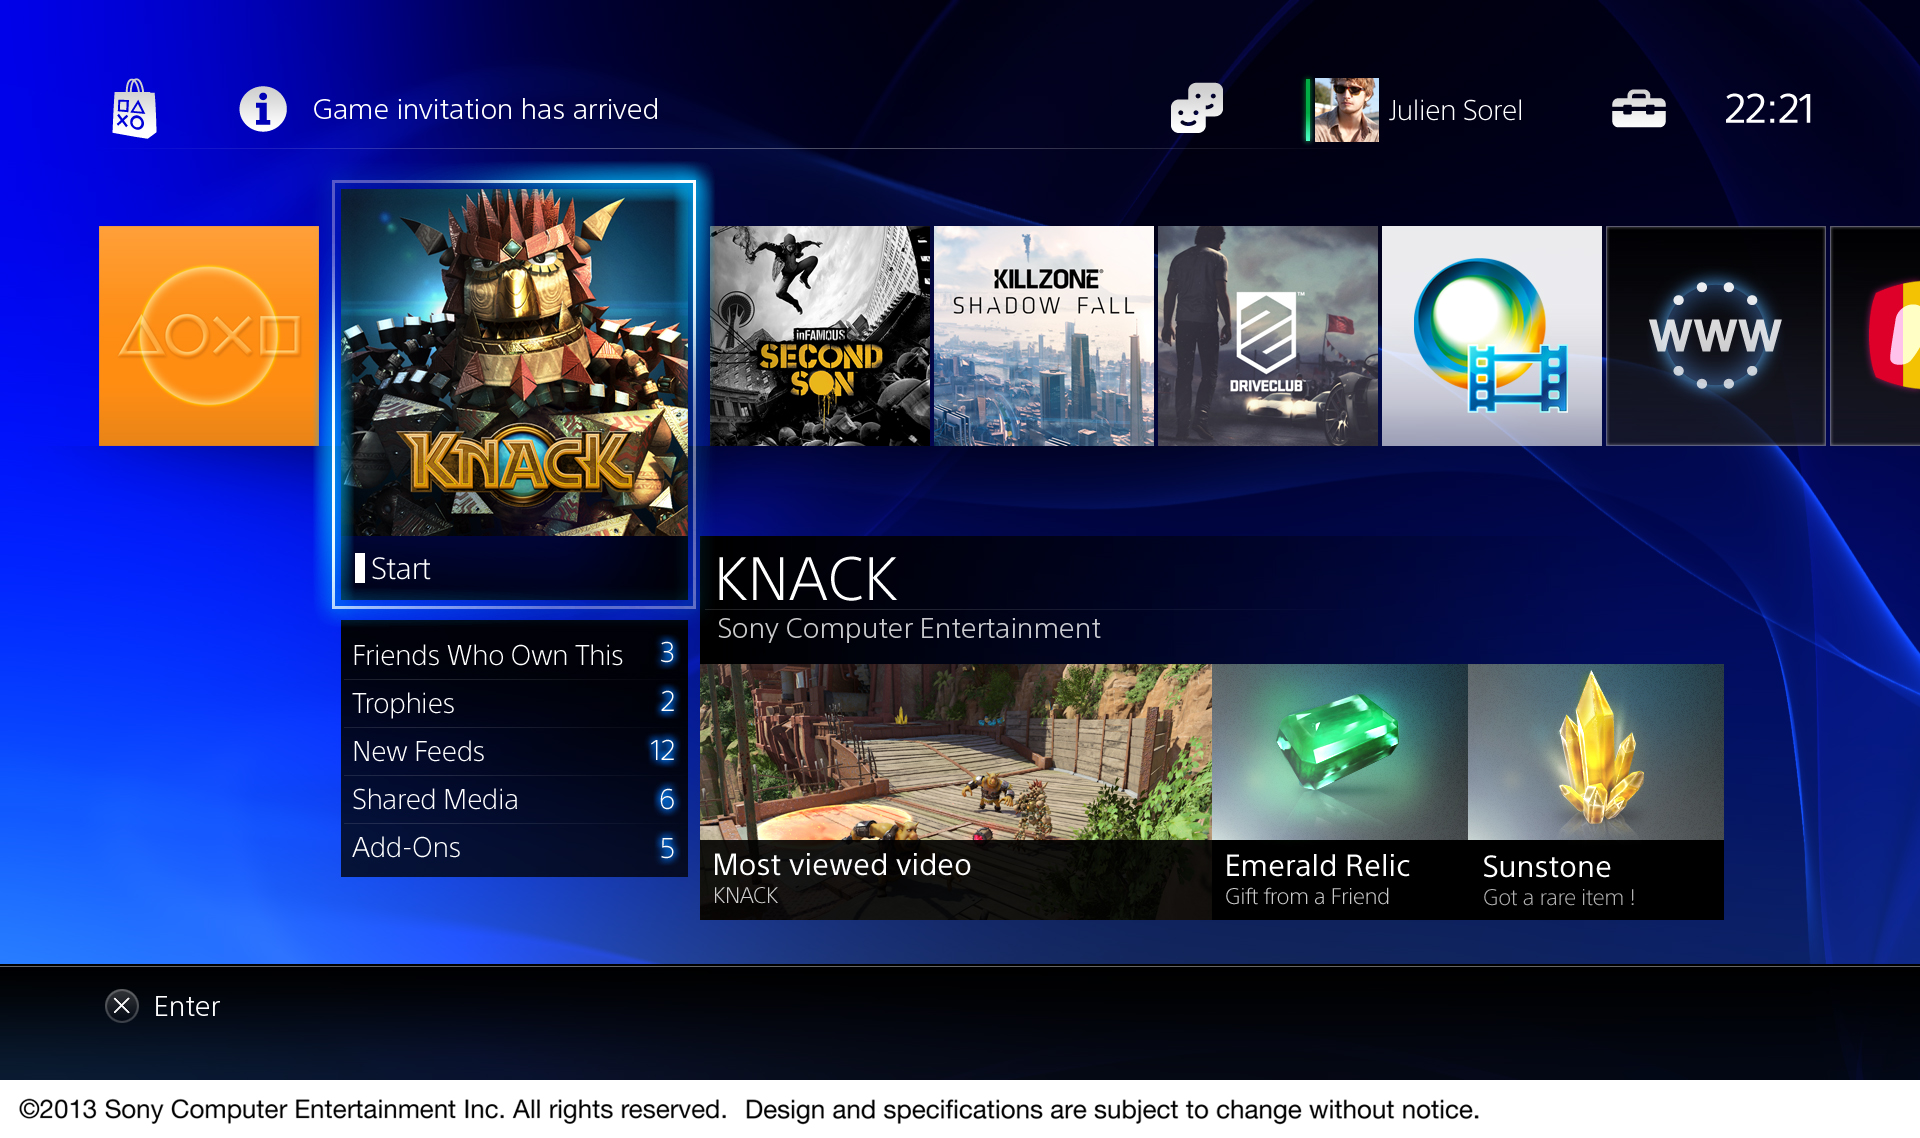 6souls games with dsee upscaled non-flac flac support 360-degree psvr photos video updated media menu dollar talkback 299 399 playstation double-double player